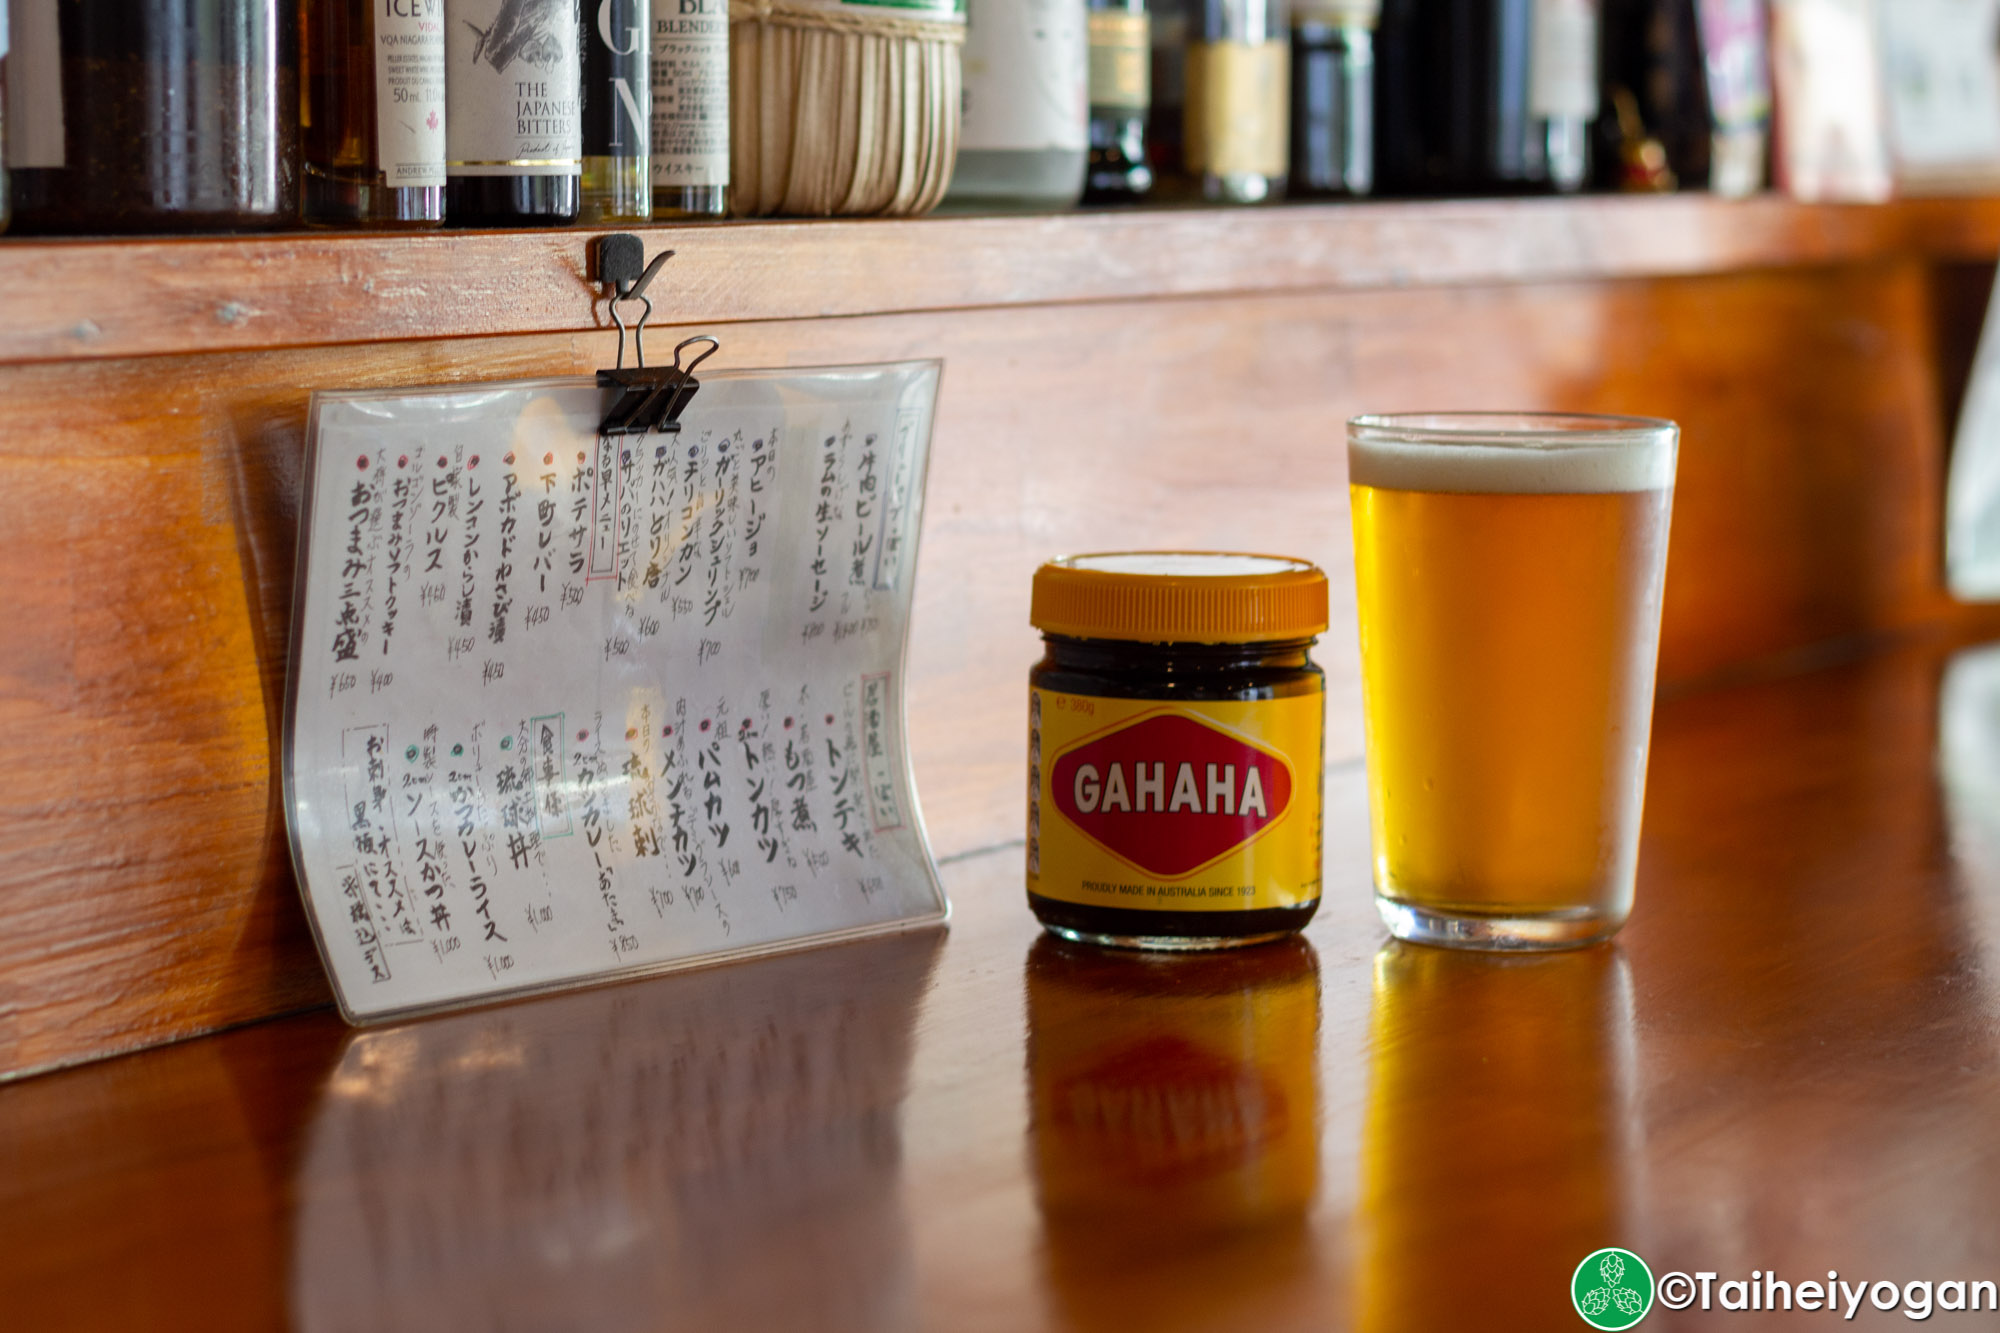 ガハハビール・Gahaha Beer - Menu - Craft Beer Vegemite